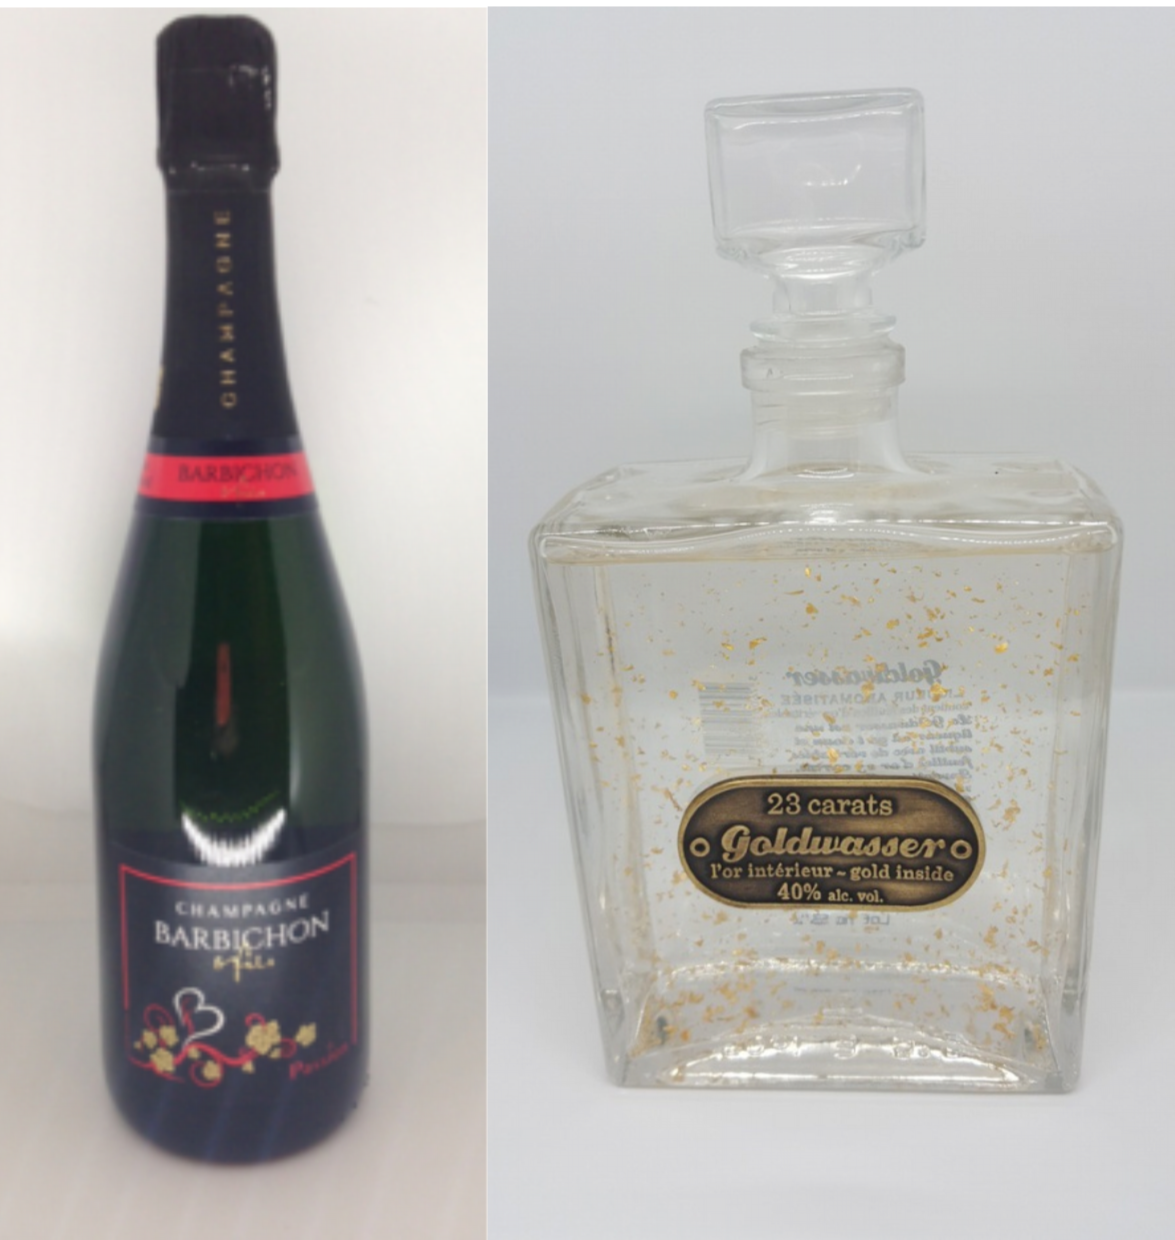 PACK DECOUVERTE Champagne Barbichon & Fils Passion + Vodka Goldwasser